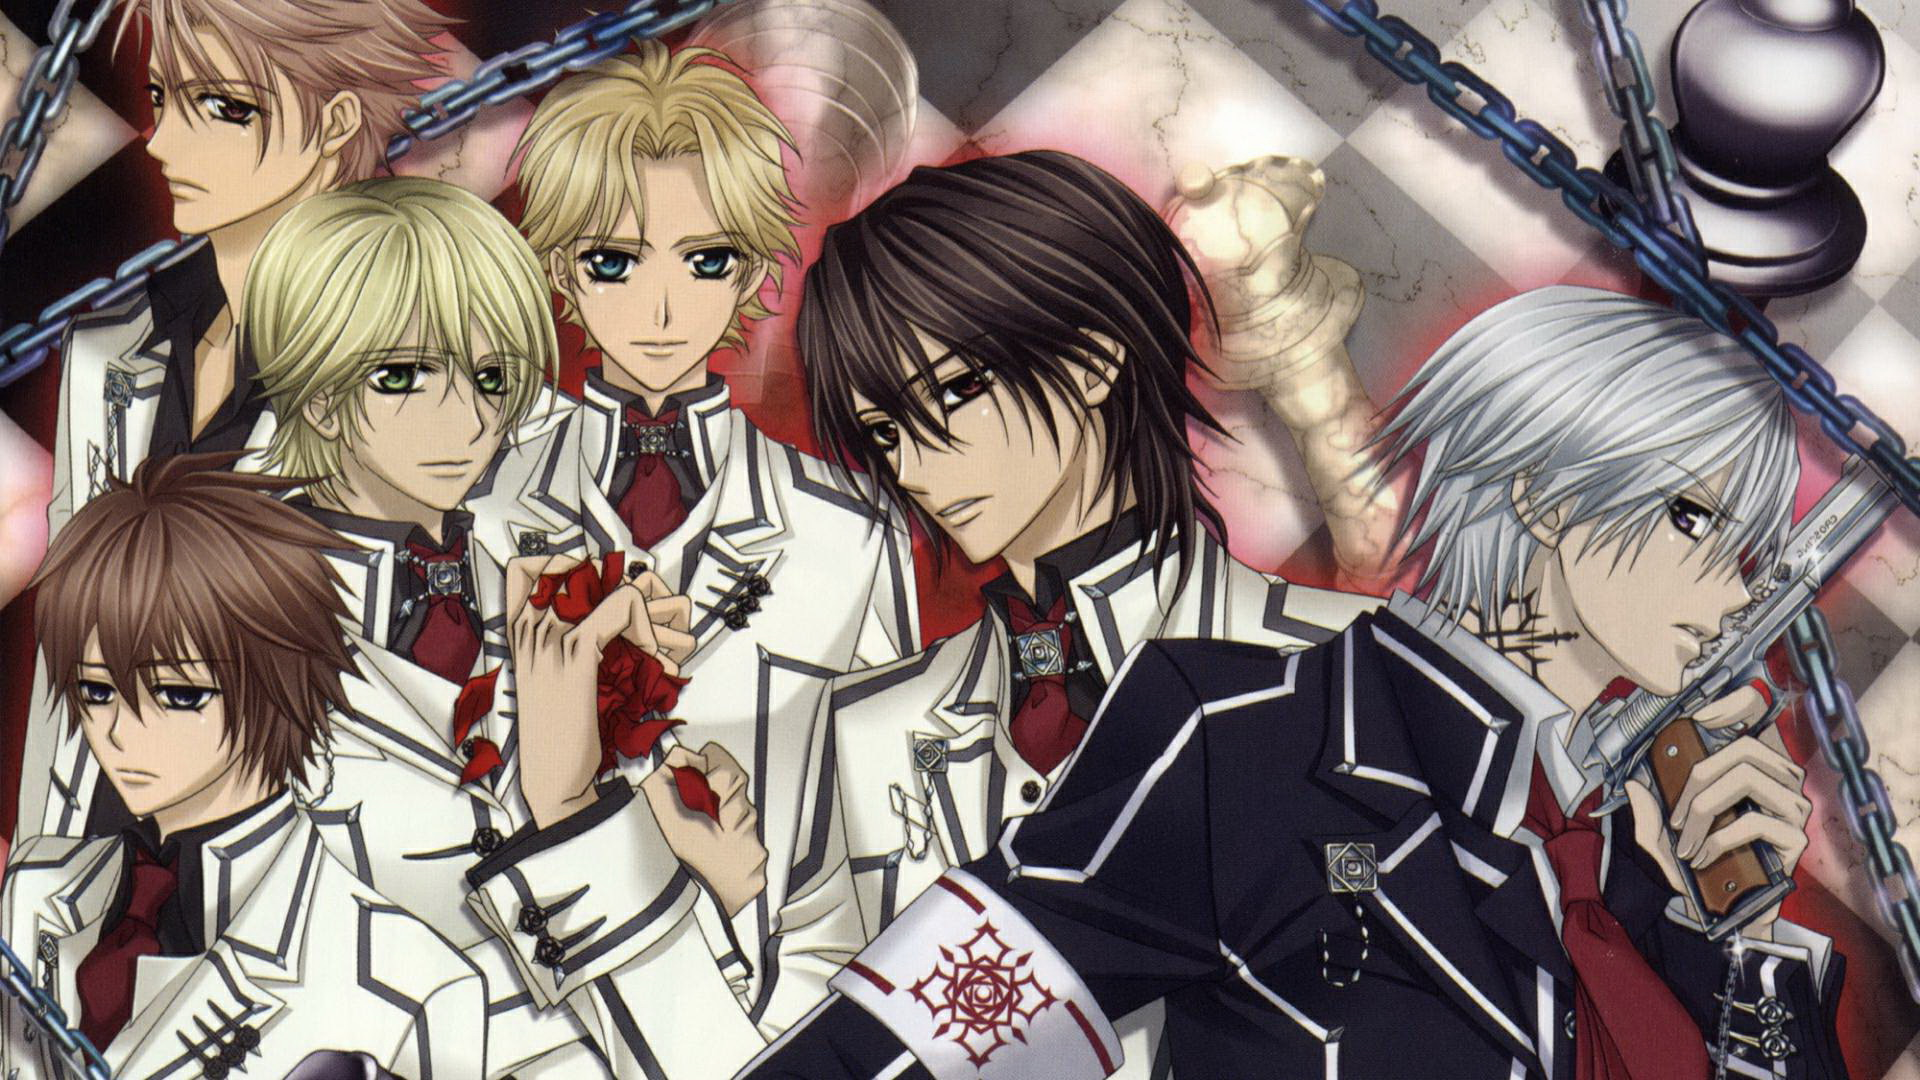 vampire knight wallpaper hd - photo #23